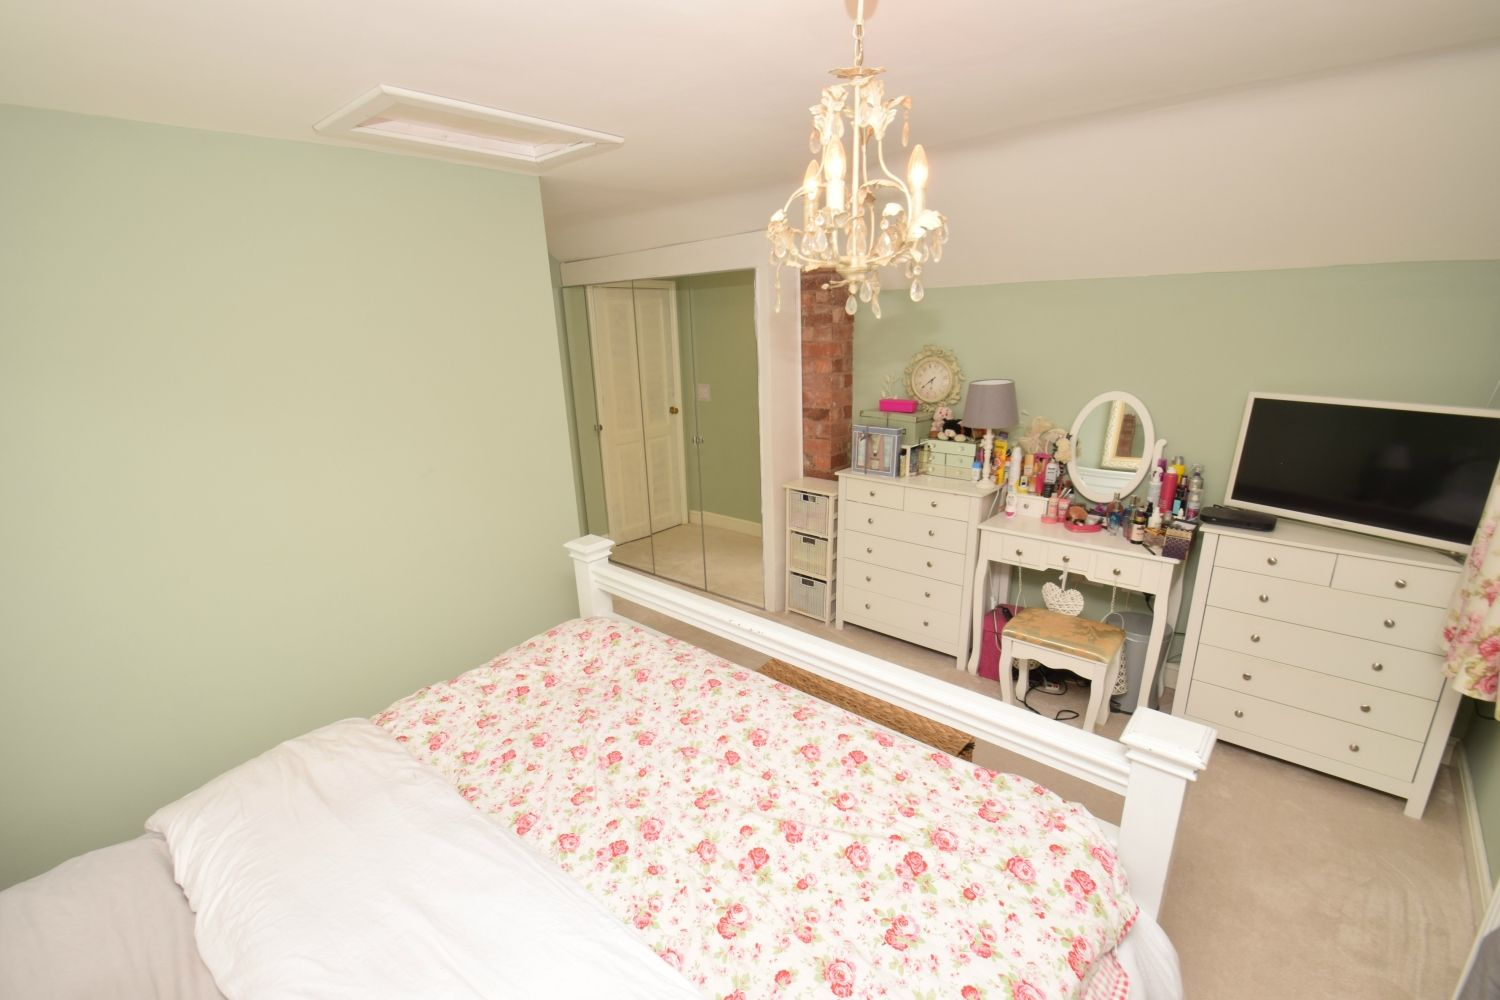 4 bed semi-detached for sale in Upland Grove, Bromsgrove, B61 18